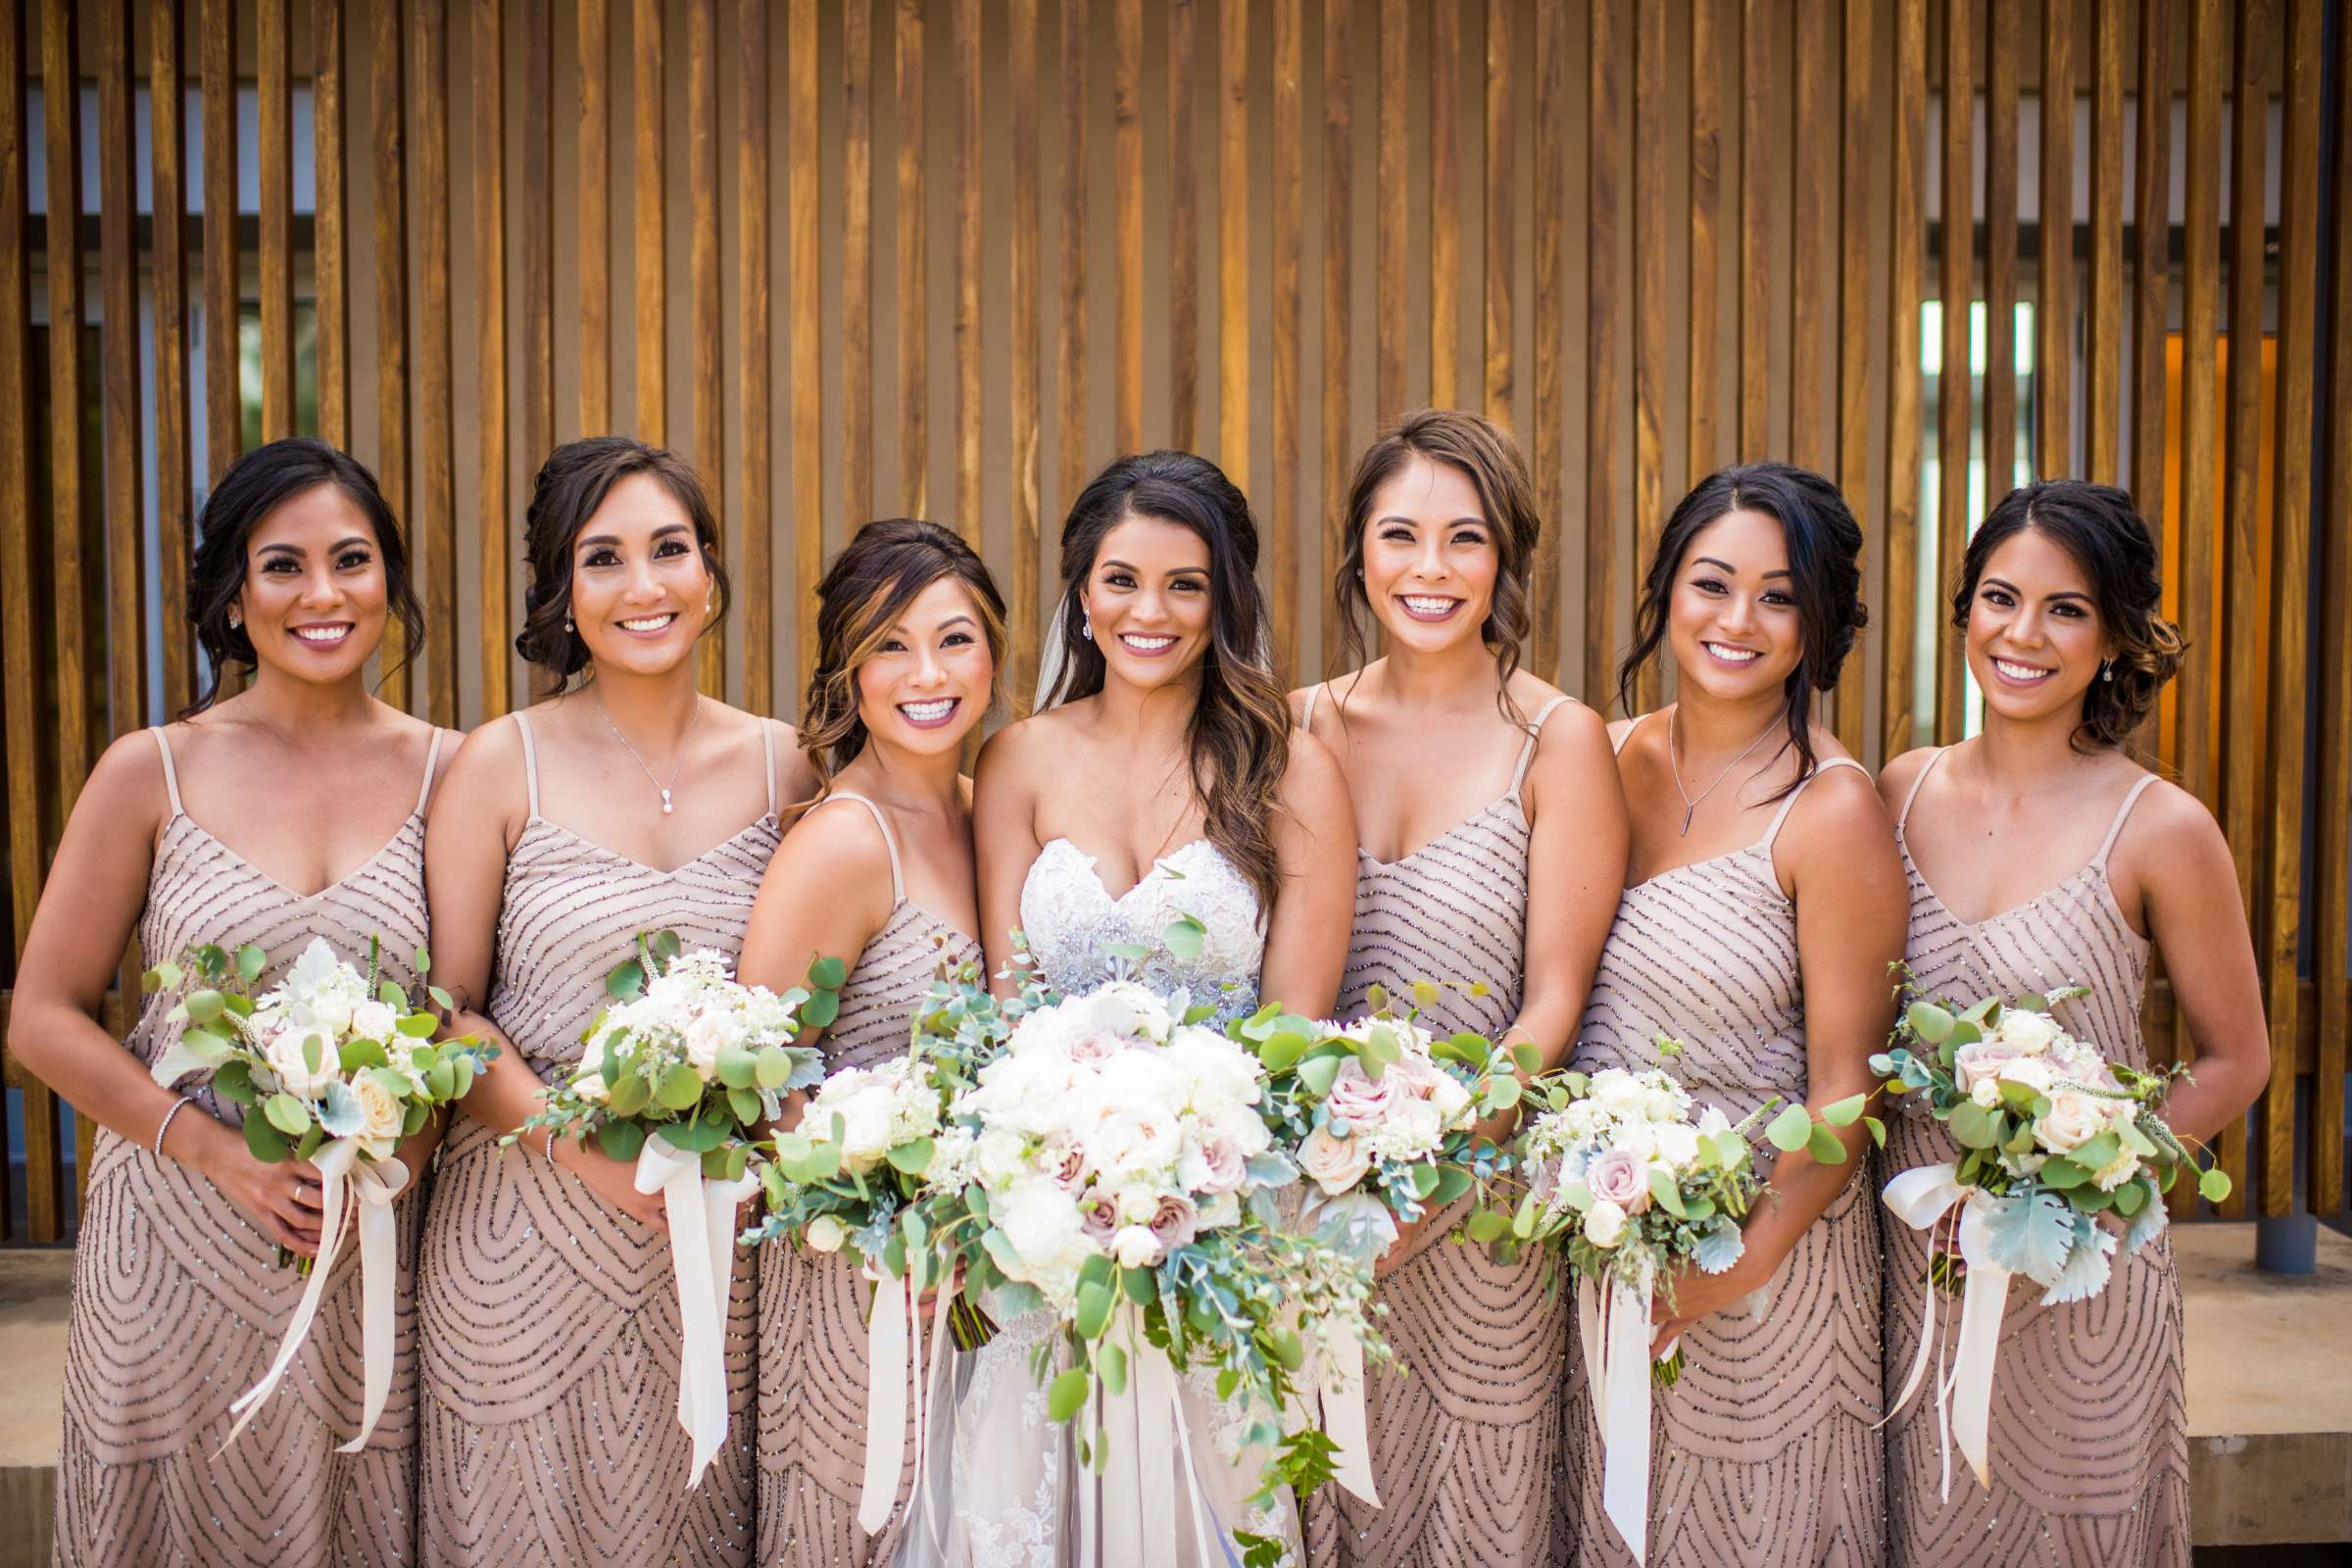 Scripps Seaside Forum Wedding coordinated by Lavish Weddings, Cindy and Justin Wedding Photo #381843 by True Photography